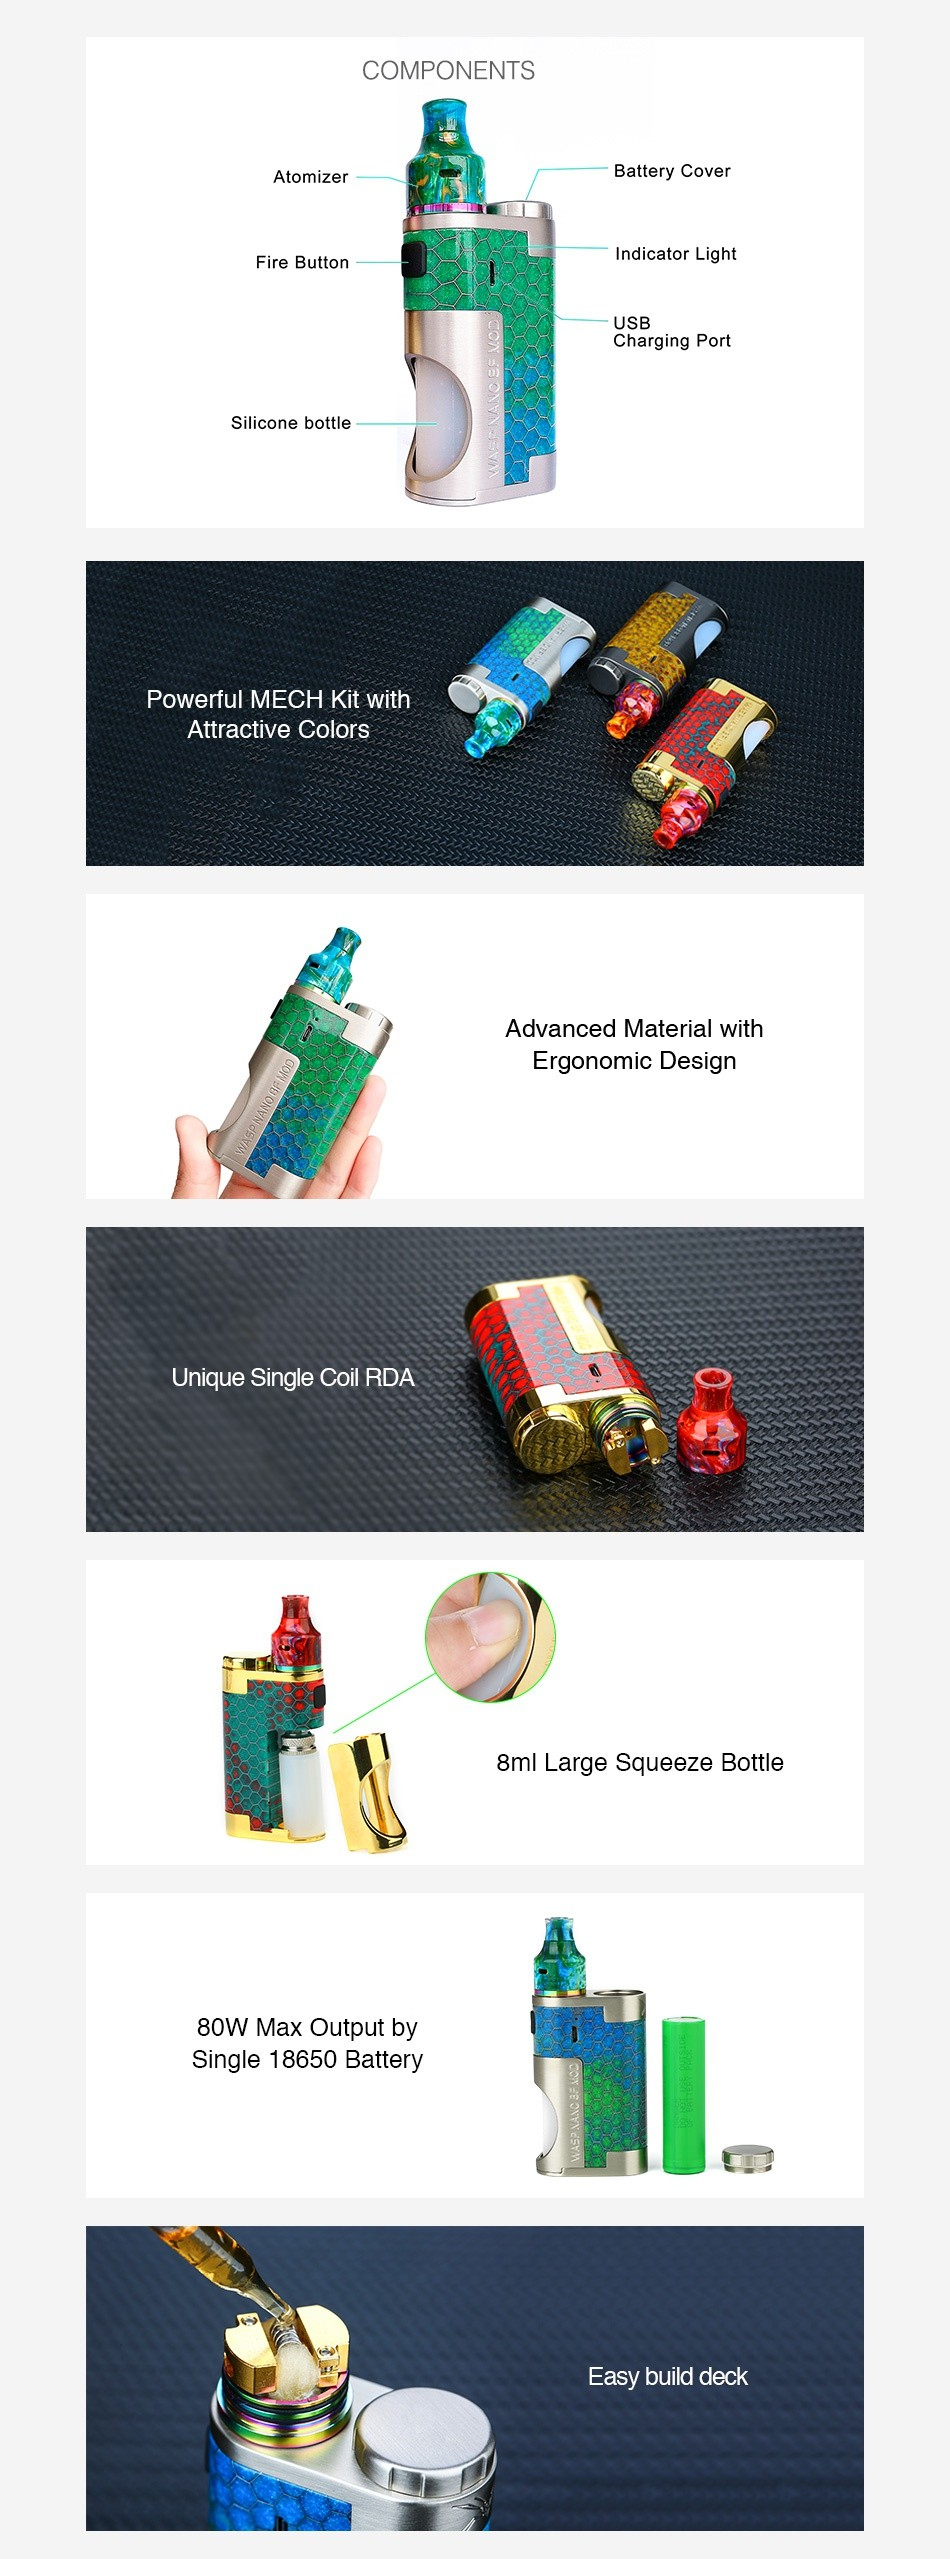 OUMIER WASP NANO MECH Squonk Kit COMPONENTS Silicone bottle Powerful MeCh Kit with Attractive cold Advanced material with Ergon Unique Single Coil RDA 8ml Large squeeze bottle 80W Max output by Single 18650 Battery asy buld deck